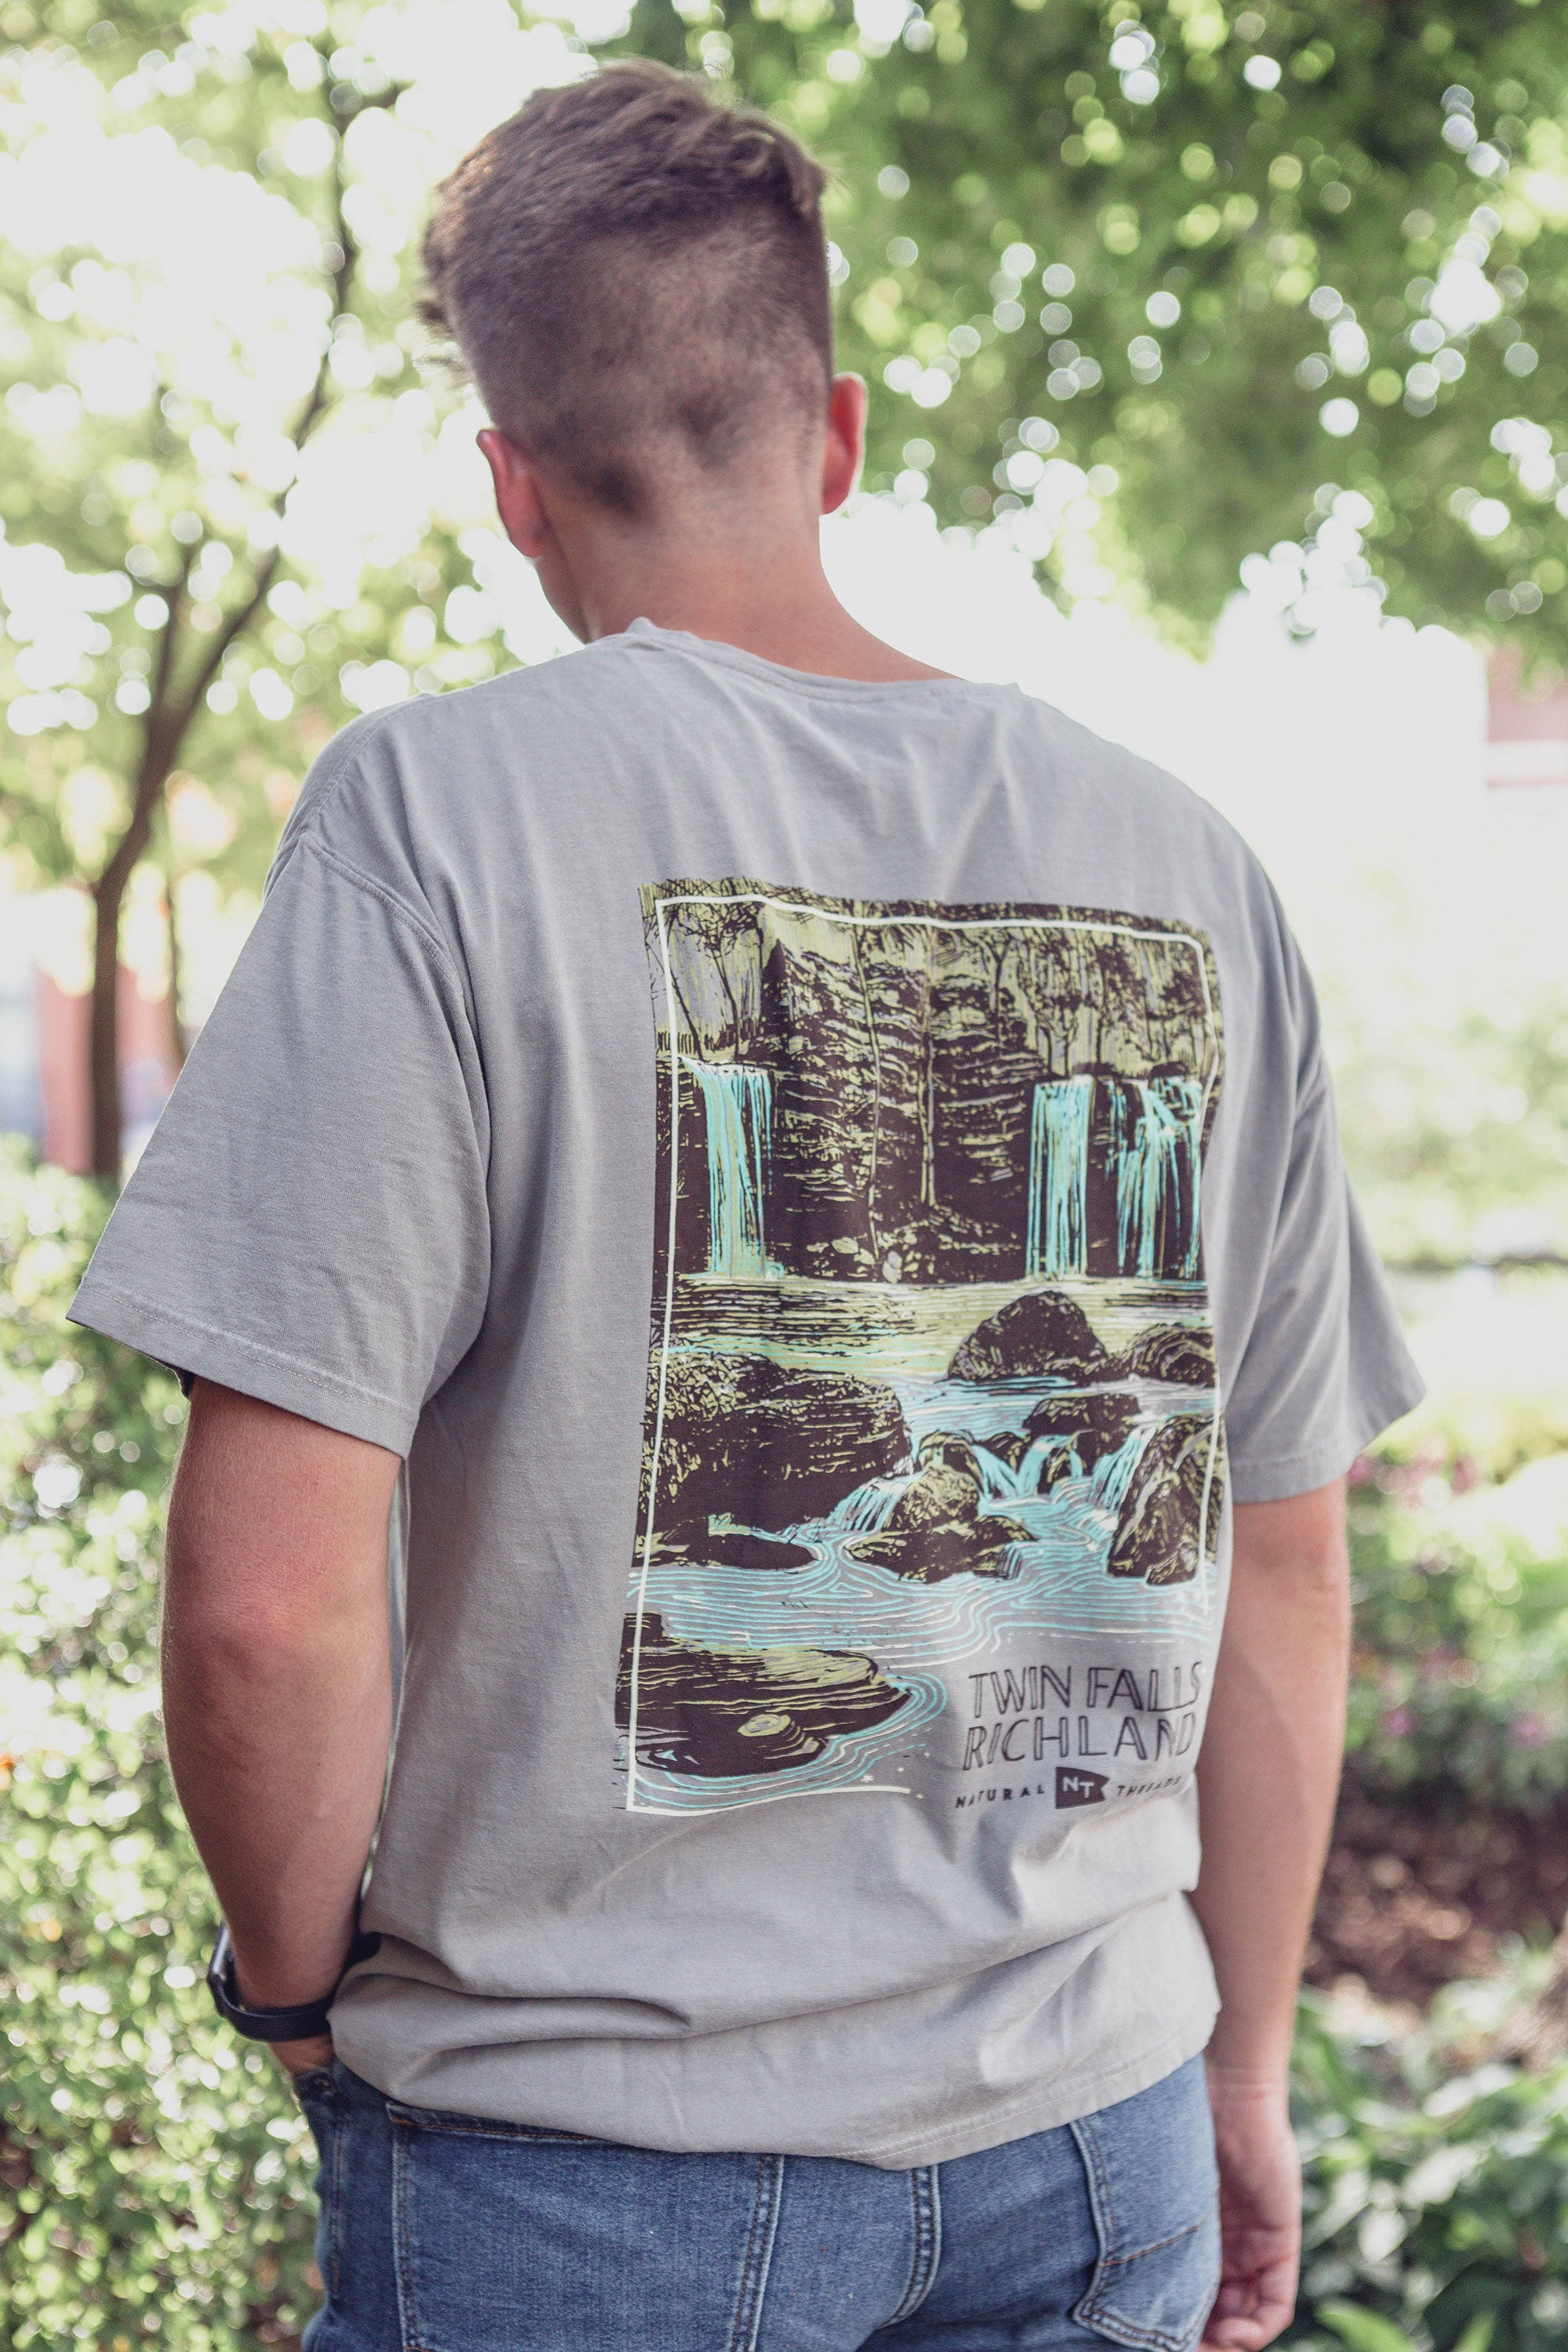 Twin Falls of Richland T-Shirt Concrete